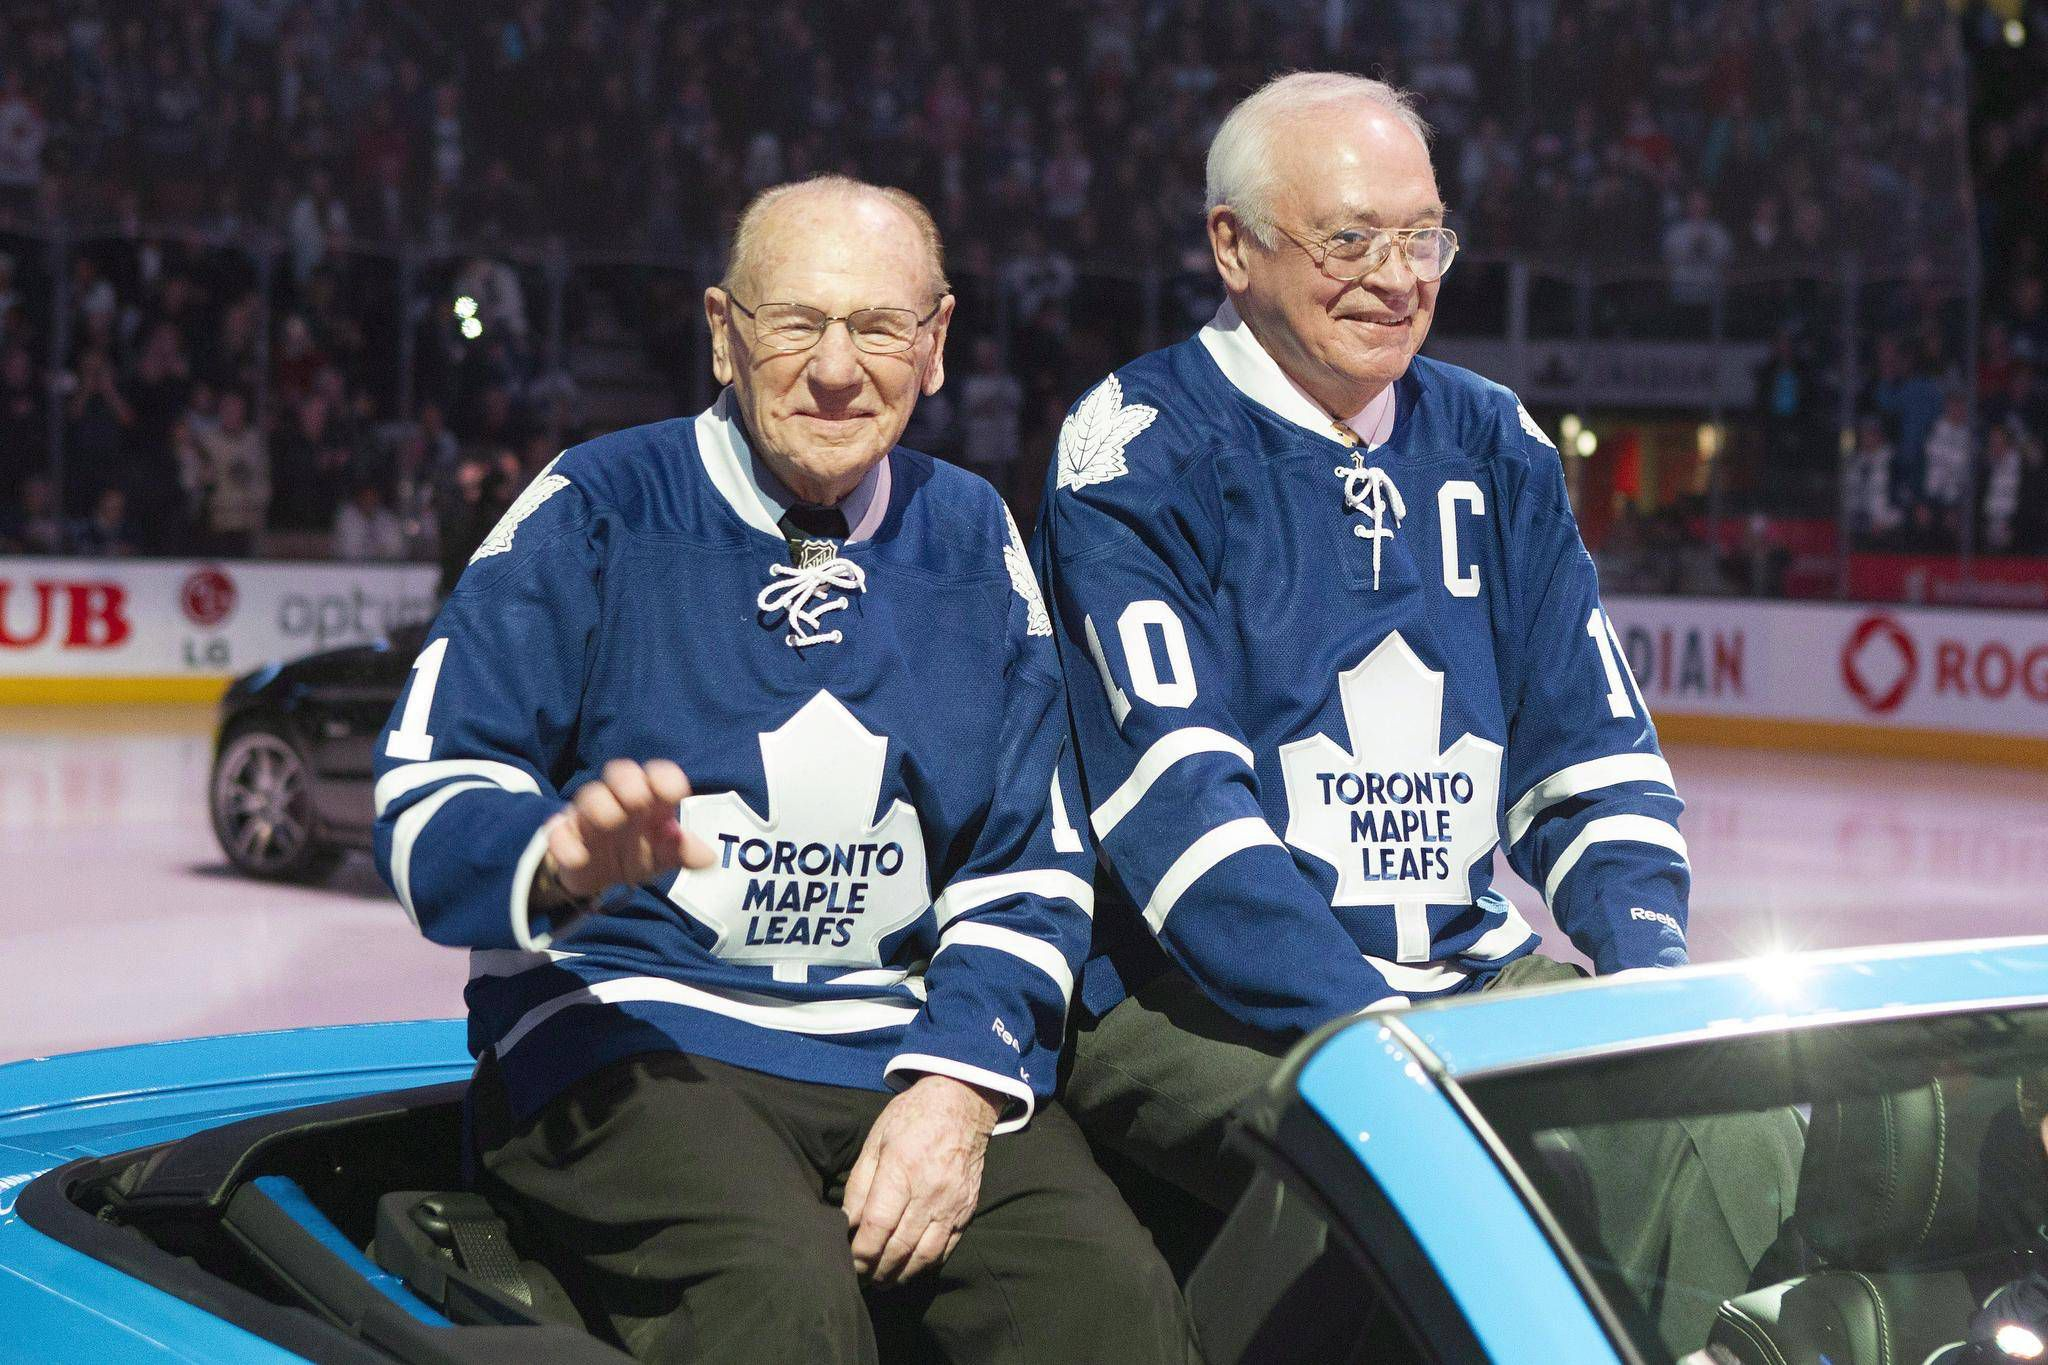 Just a great guy': Remembering Maple Leafs legend Johnny